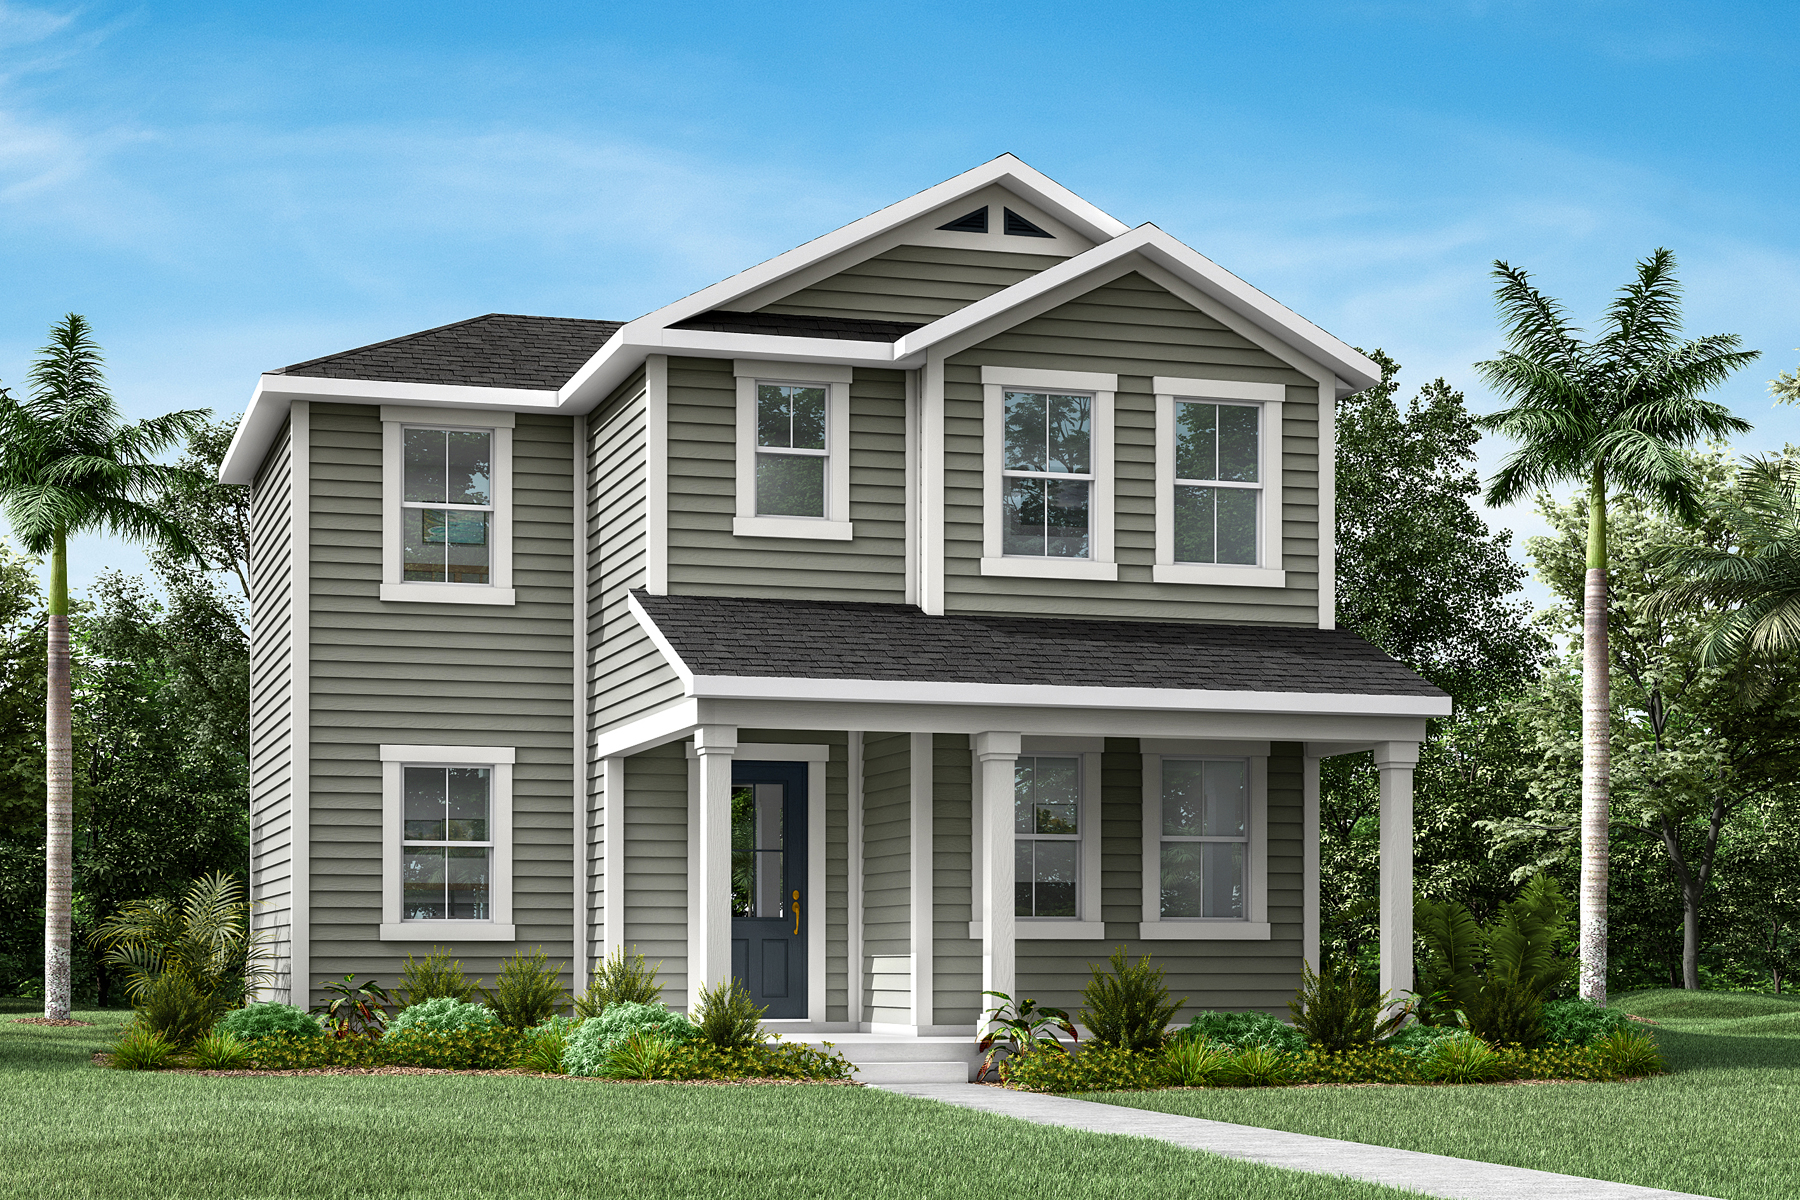 Lacey Plan JAX_Wildlight_Lacey_LowCountry at Forest Park at Wildlight in Yulee Florida by Mattamy Homes